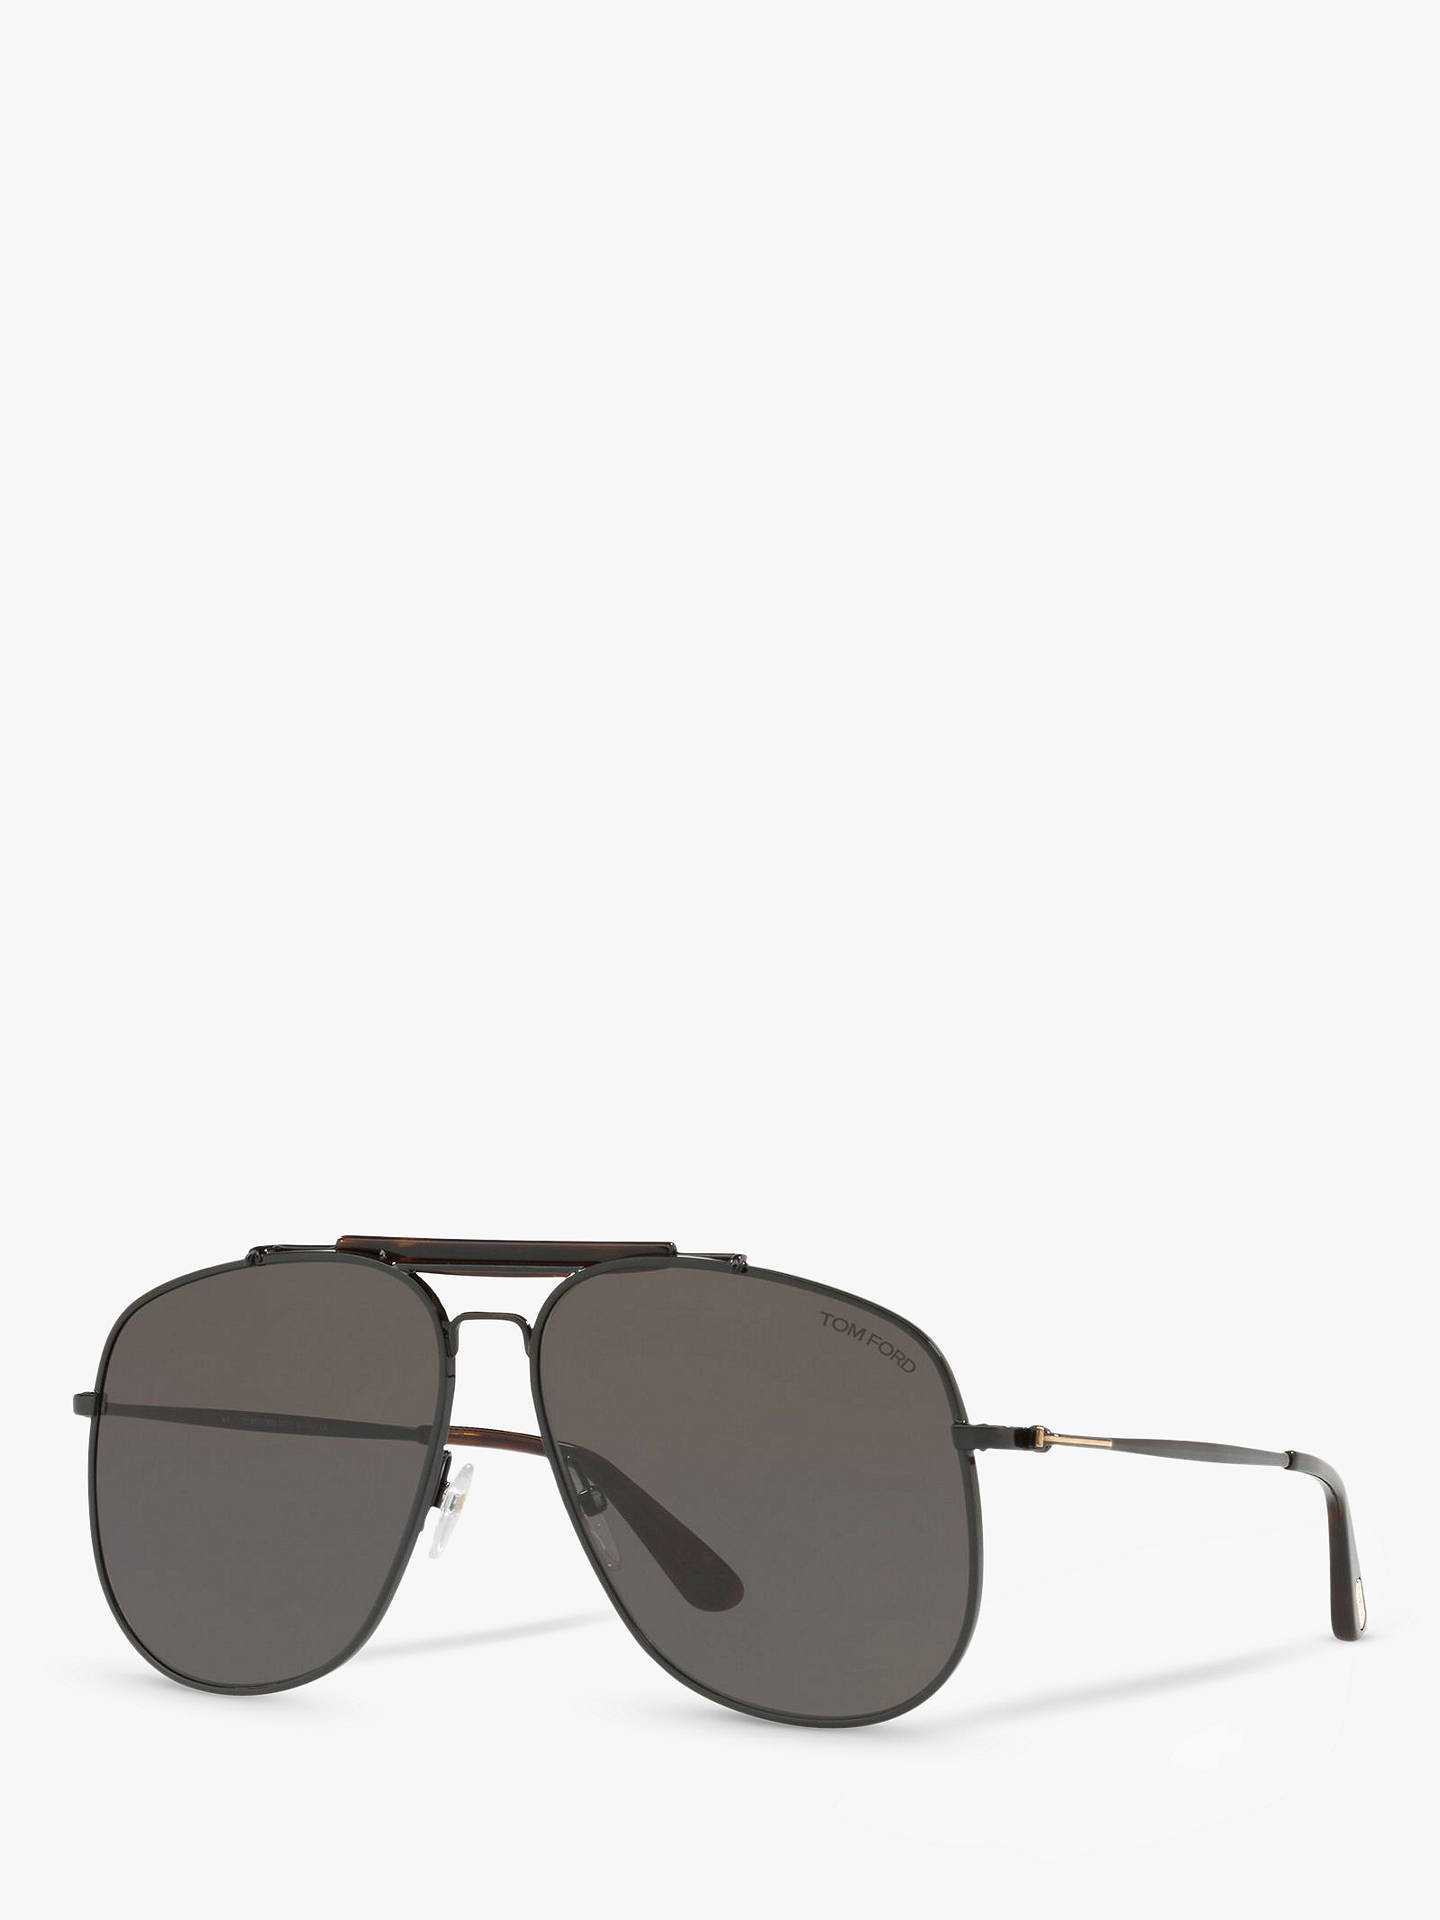 b11fdcea8f Buy TOM FORD FT0557 Connor Aviator Sunglasses, Black/Grey Online at  johnlewis.com ...